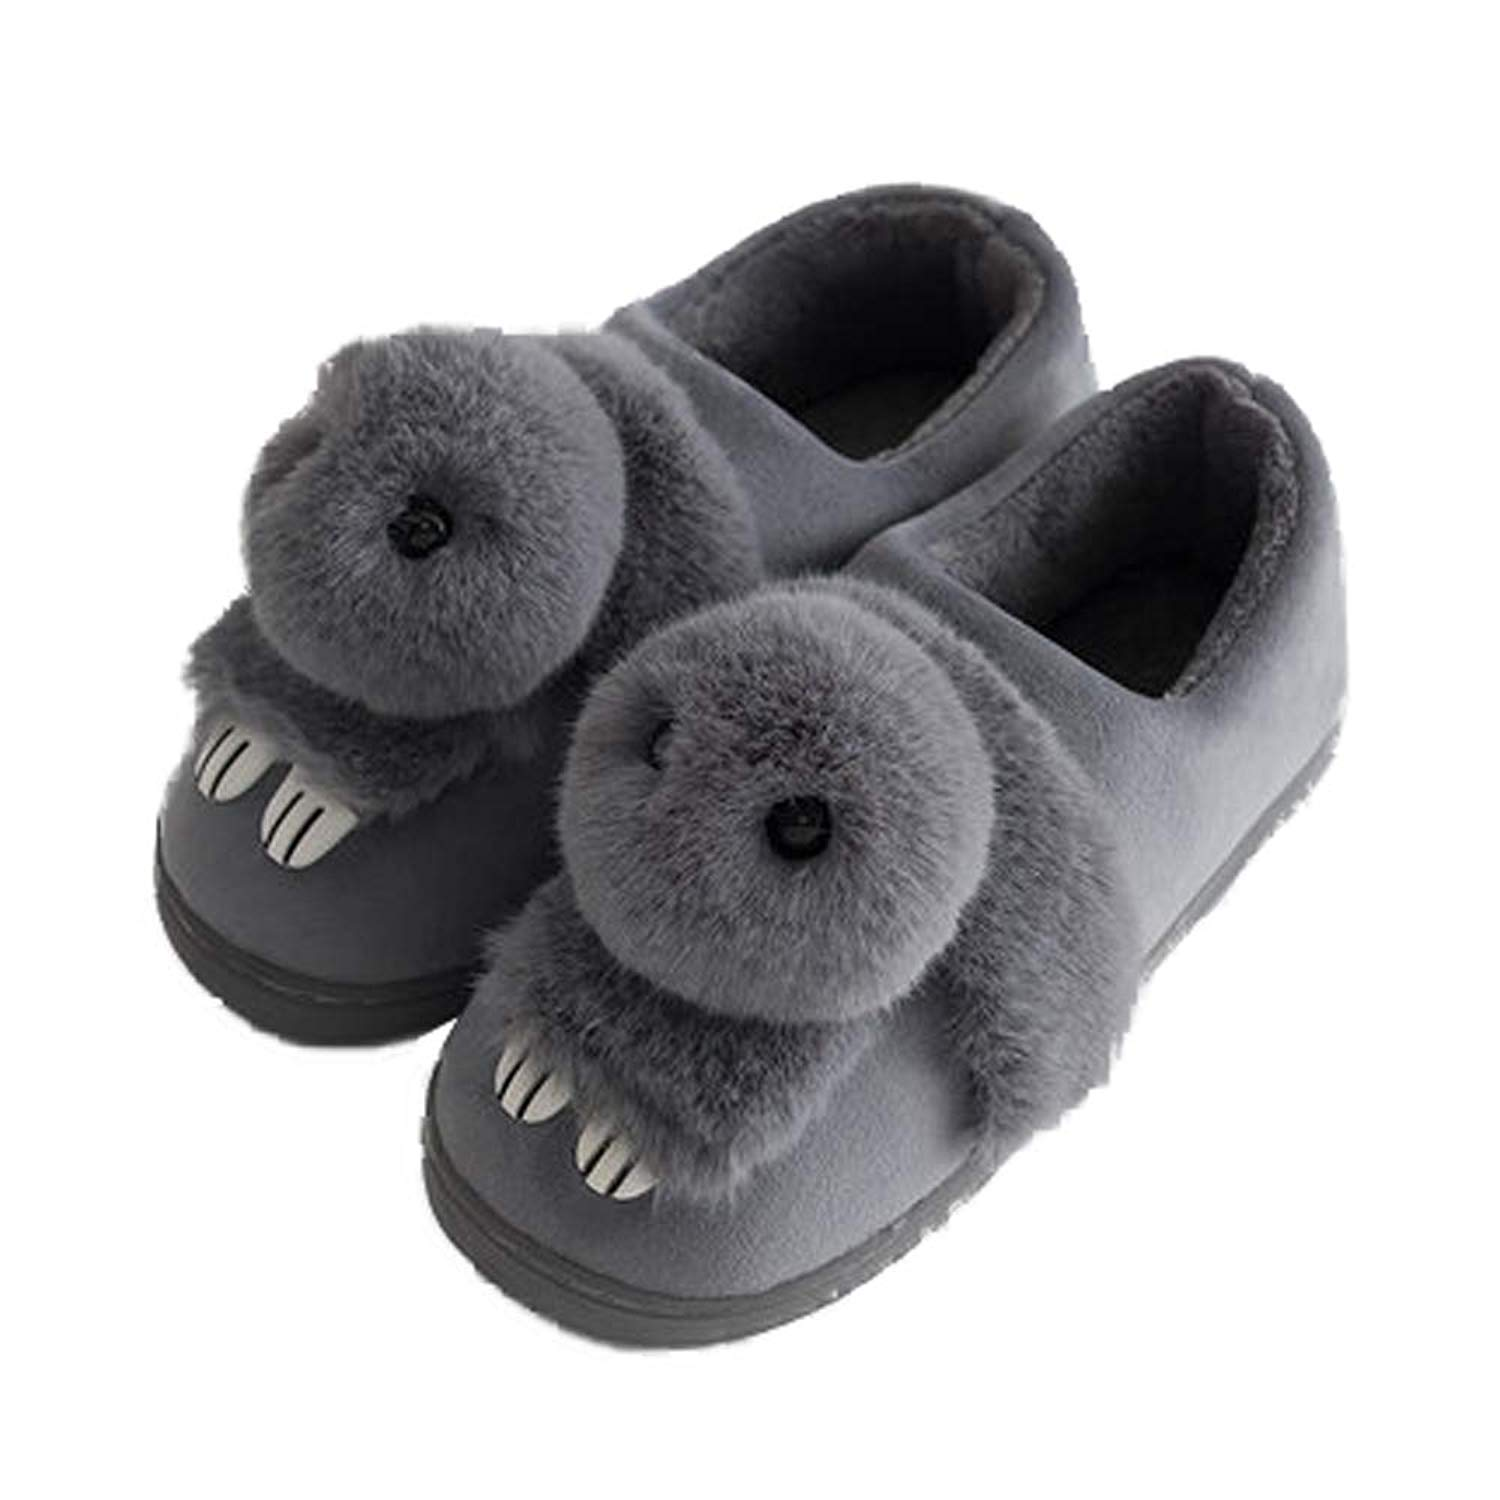 4ddcaccf0ef Get Quotations · Bunny Slipper Toddler Girls Indoor Outdoor Fur Warm Cute  Kids Animal Shoes